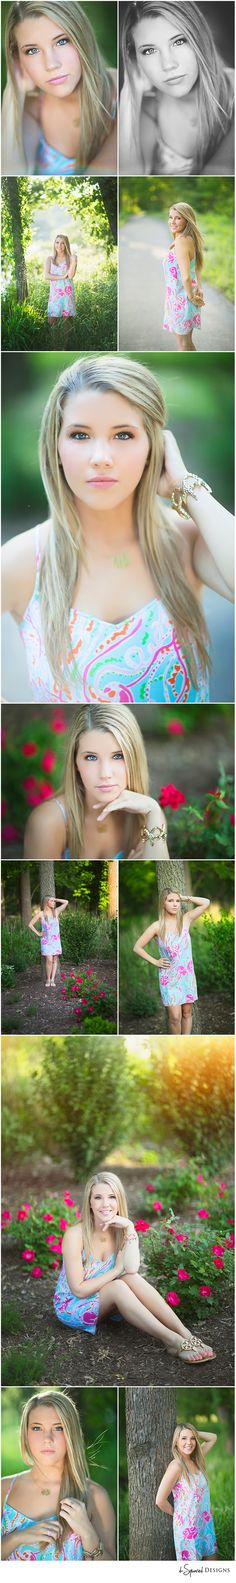 d-Squared Designs Missouri Senior Photography. Senior girl. Senior girl posing. Gorgeous senior girl. Summer session.